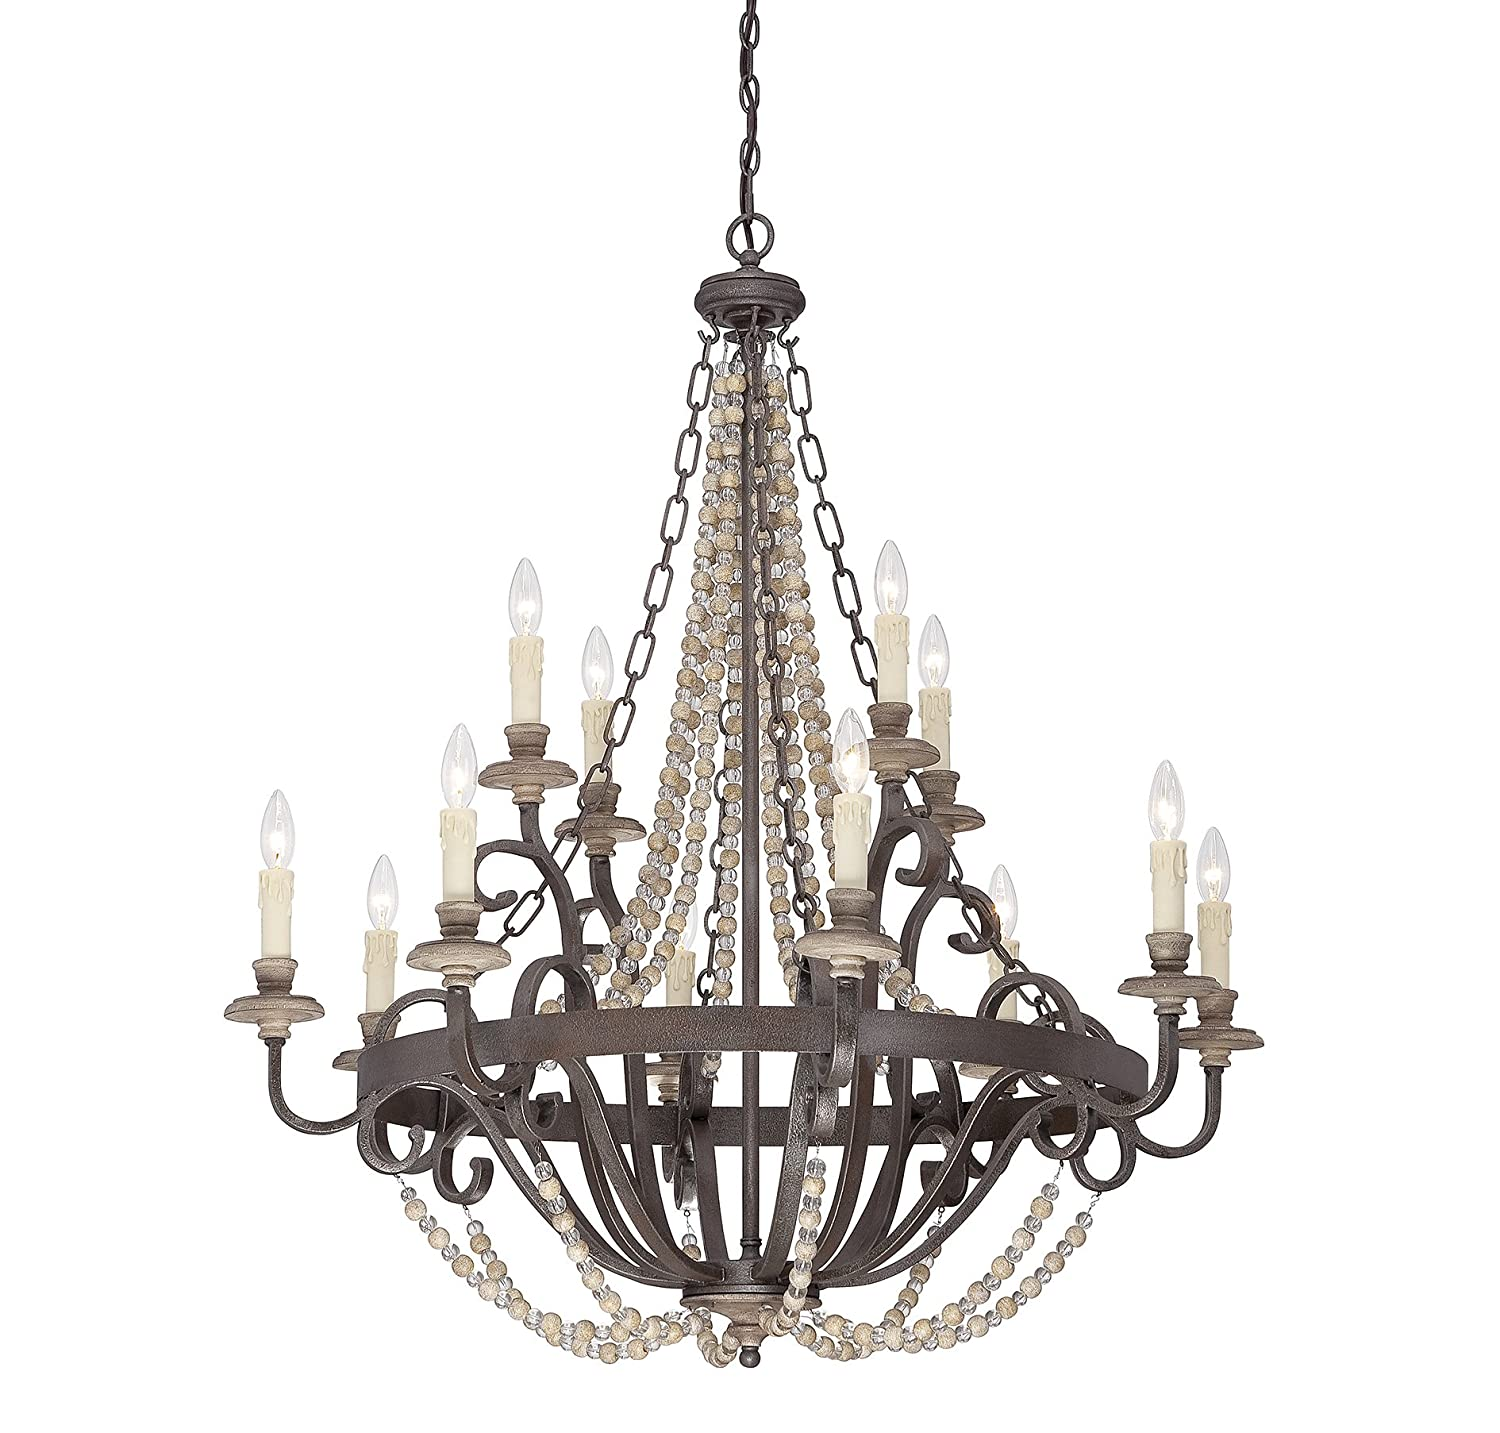 Savoy House 1-7405-12-39 Mallory 12-Light Chandelier in Fossil Stone Finish